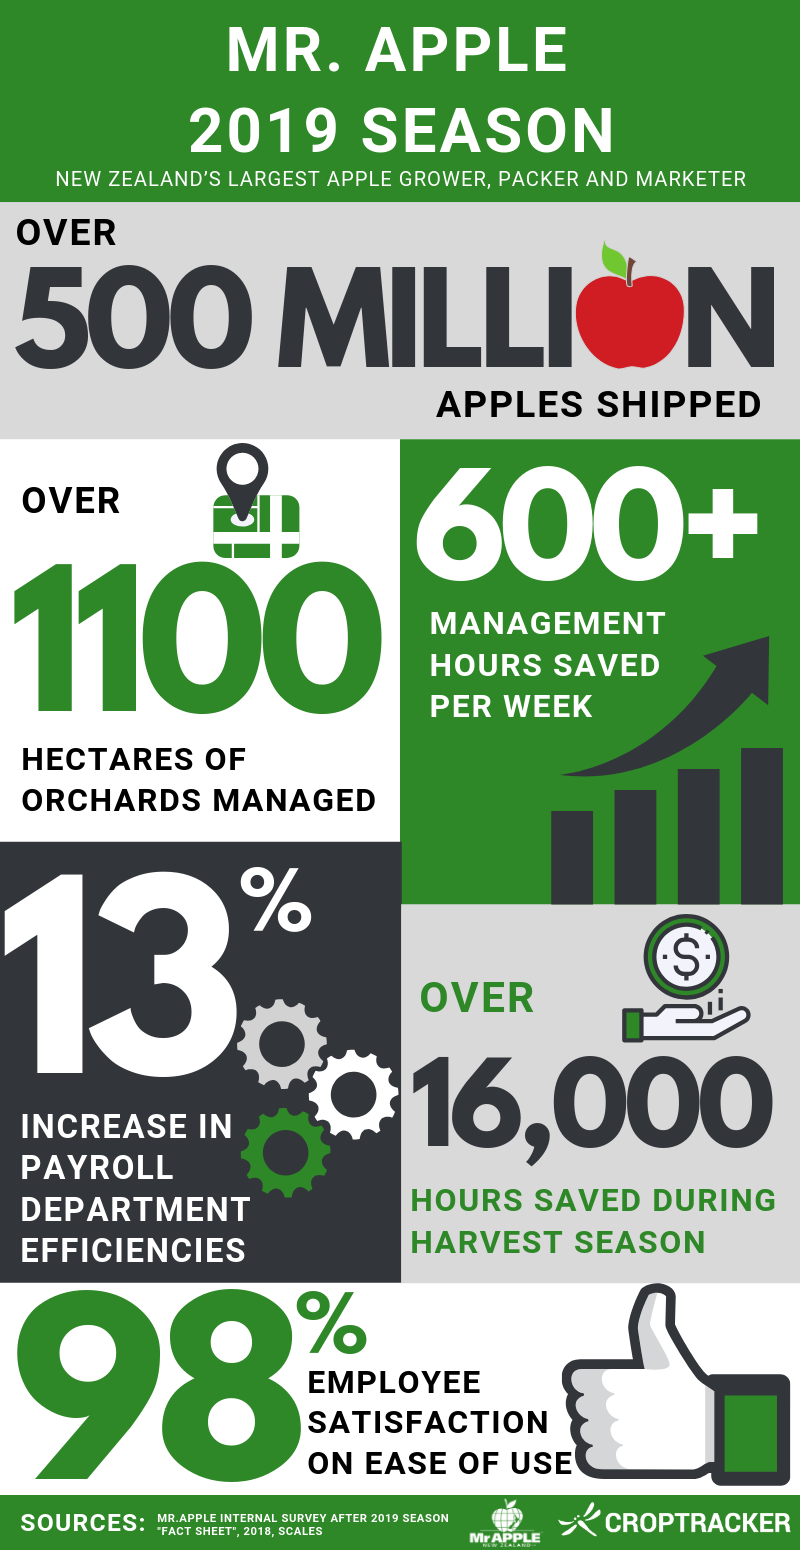 Croptracker Mr. Apple Infographic Update